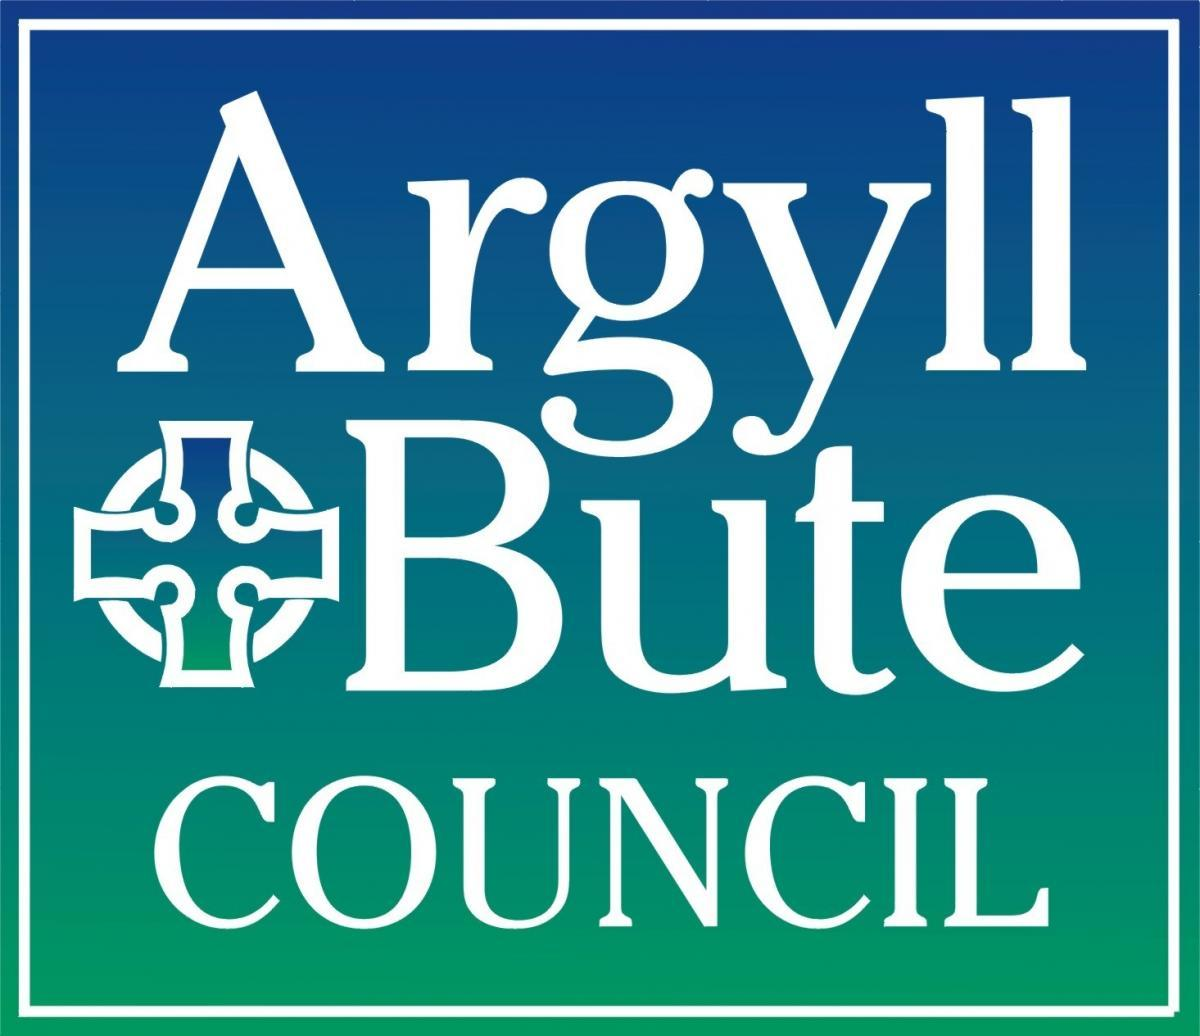 A new report anticipates a 4.79 per cent rise in council tax in Argyll and Bute - though councillors won't make a final decision until later this month